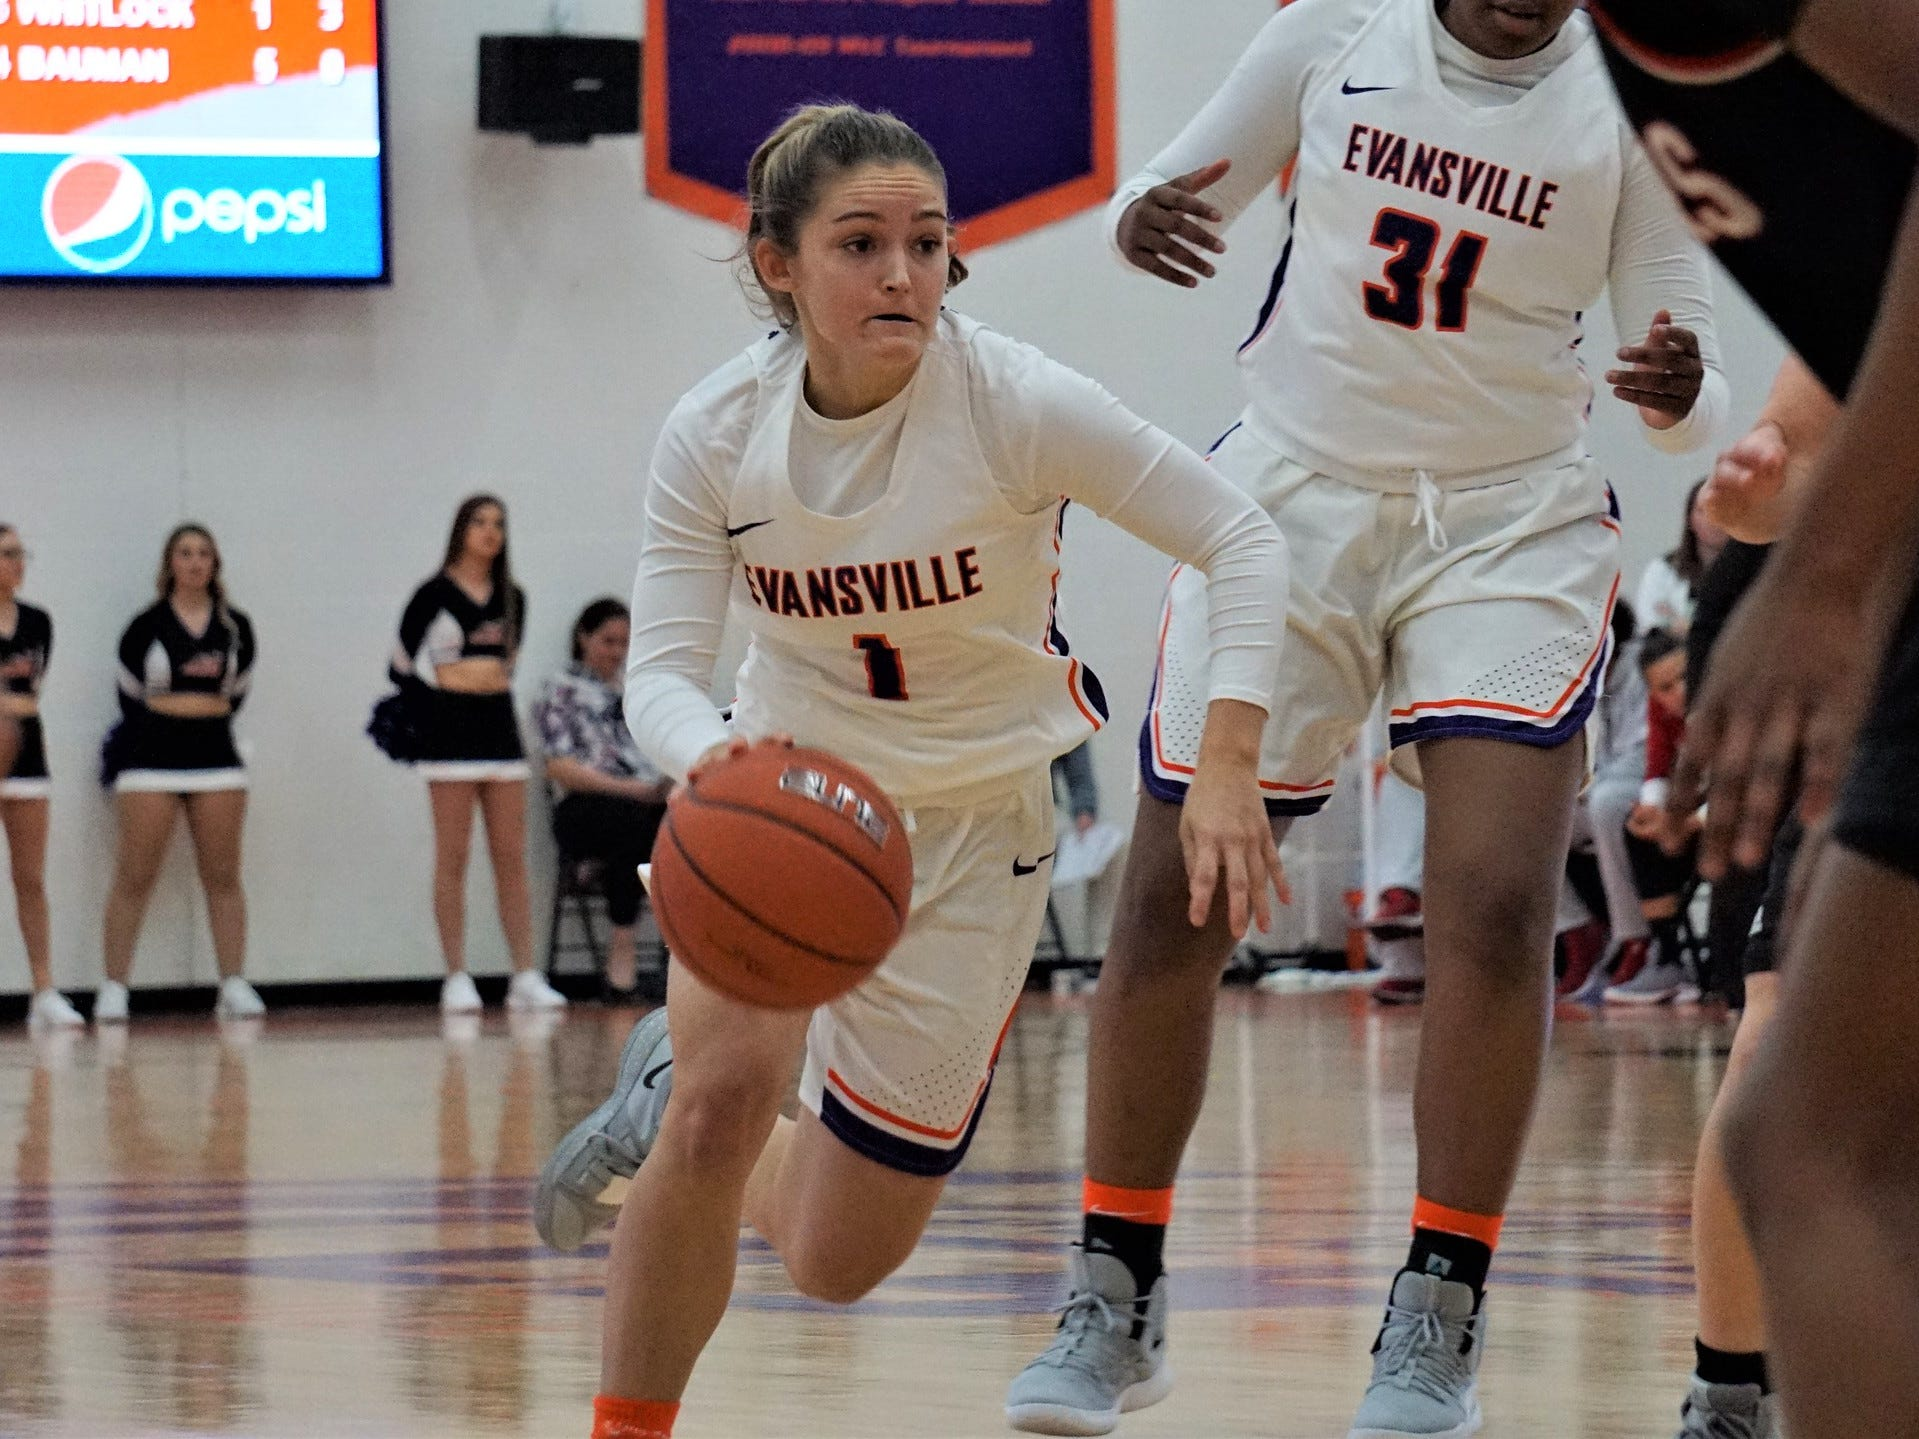 University of Evansville women's basketball freshman Anna Newman never wavered in her commitment to the Purple Aces.